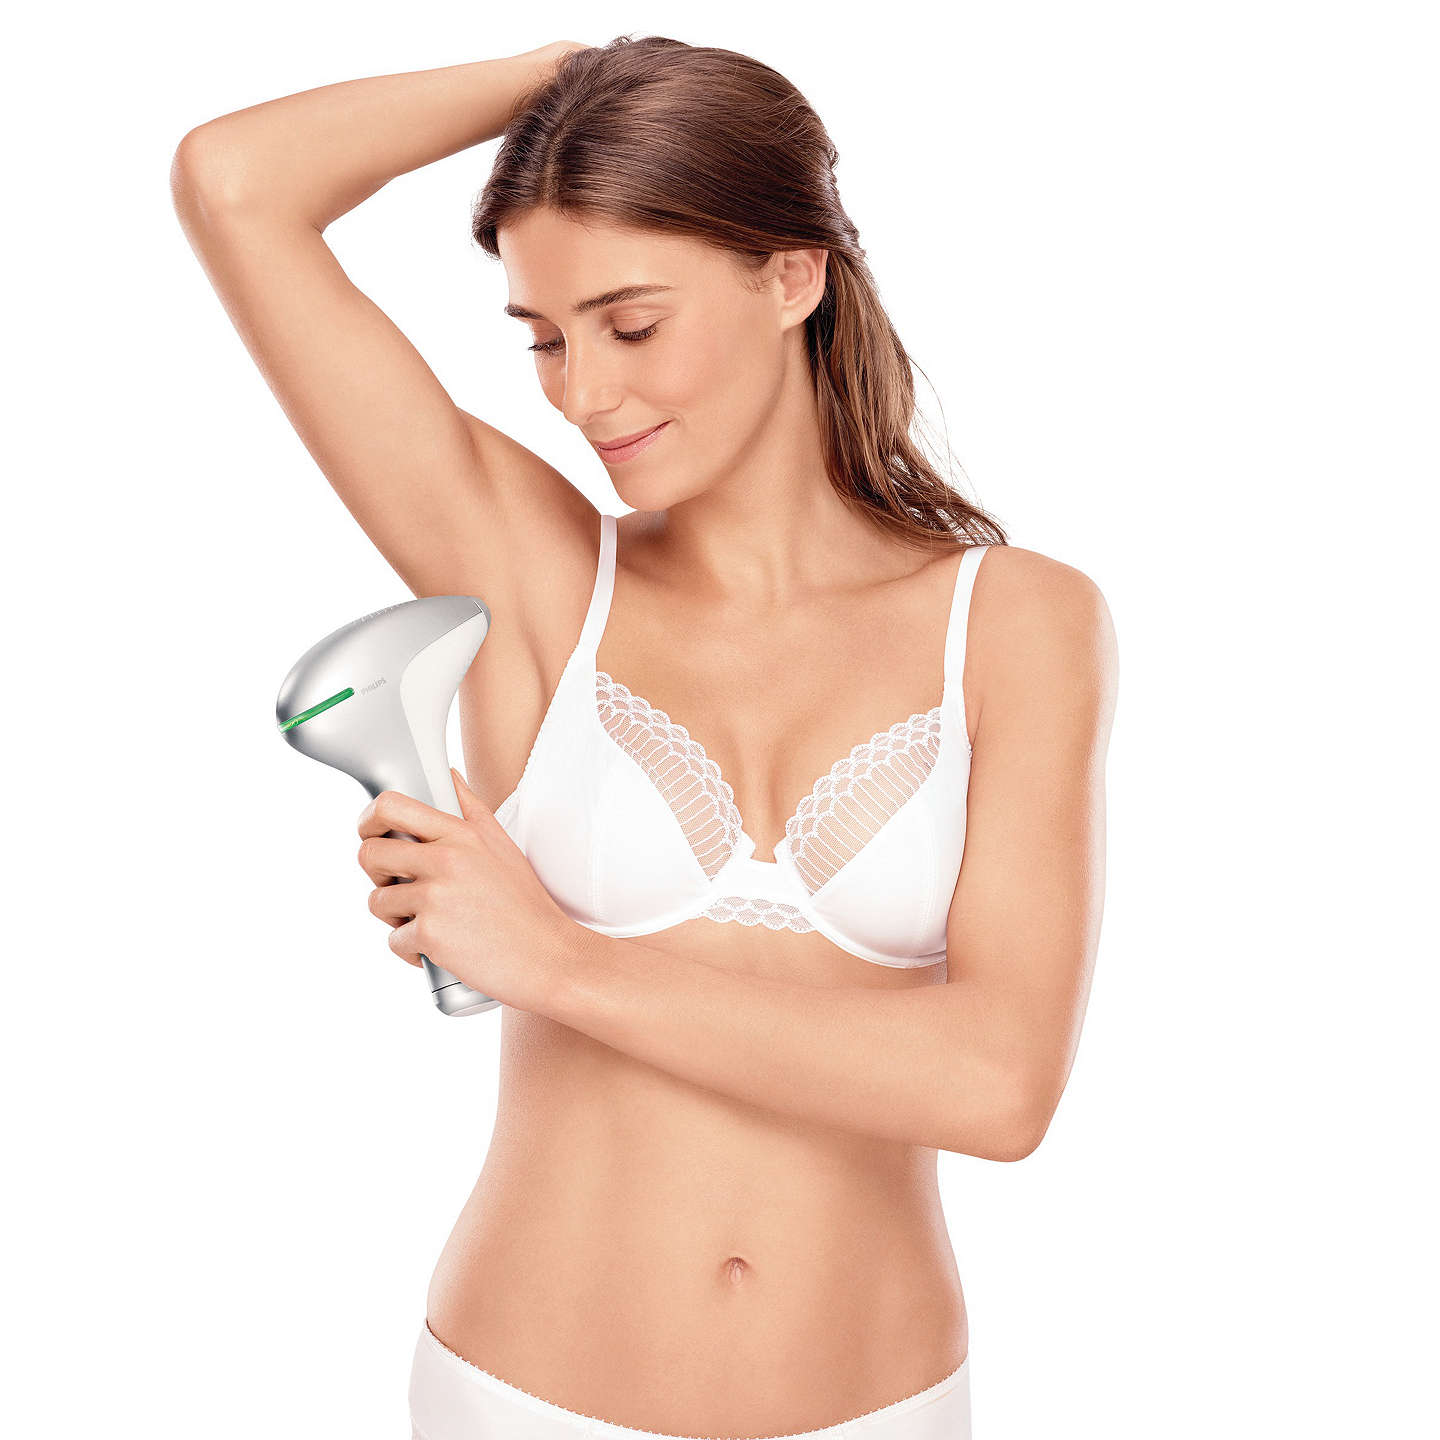 Philips Sc2007 00 Lumea Ipl Hair Removal System White At